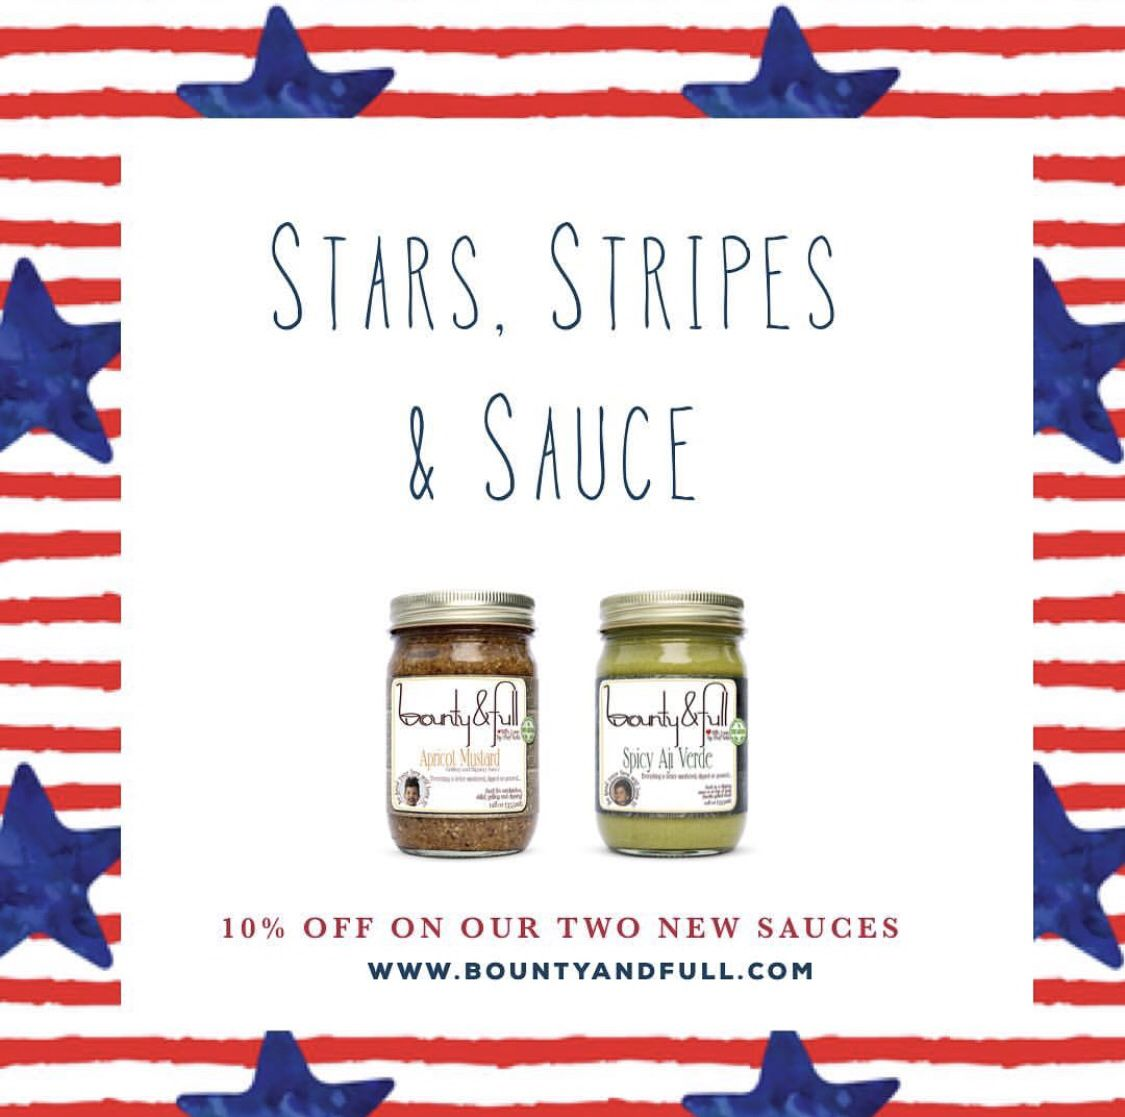 Labor Day's right around the corner, have you tried our new sauces? https://t.co/xOfe3KJ5Gf - use code 10OFF https://t.co/R9LcjvqXrZ